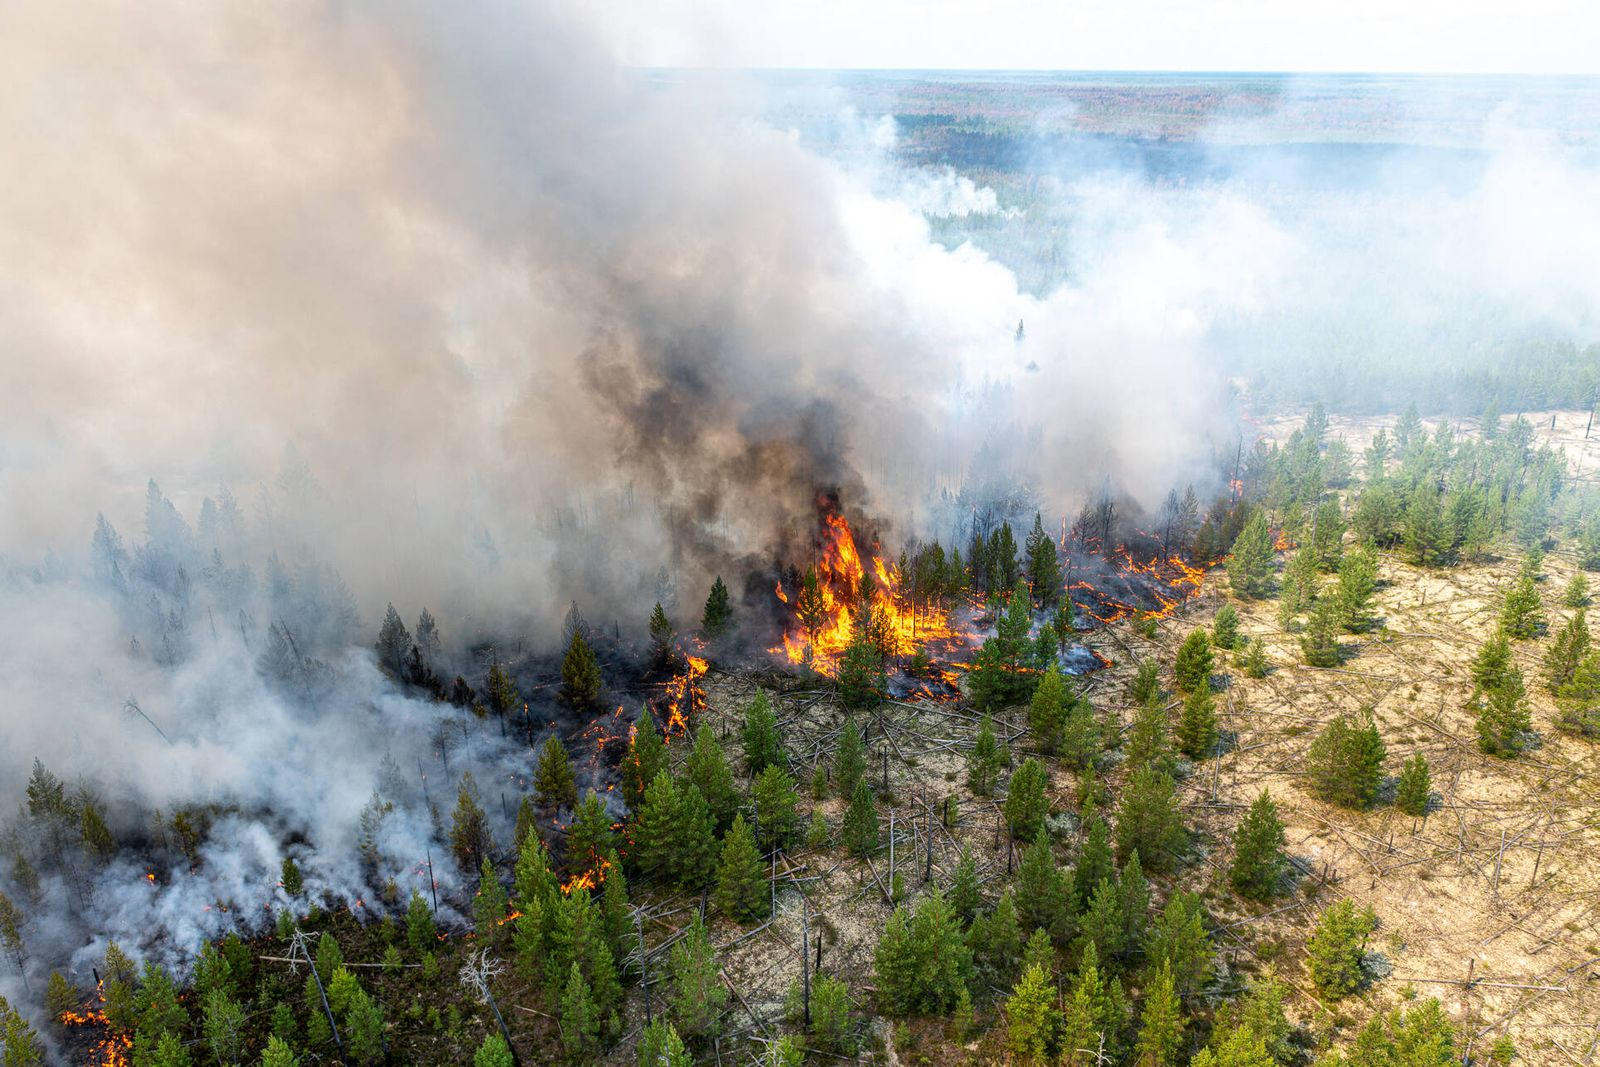 News Bilder des Tages KHANTY-MANSI AUTONOMOUS AREA, RUSSIA - JULY 21, 2020: An aerial view of a wildfire in the taiga in